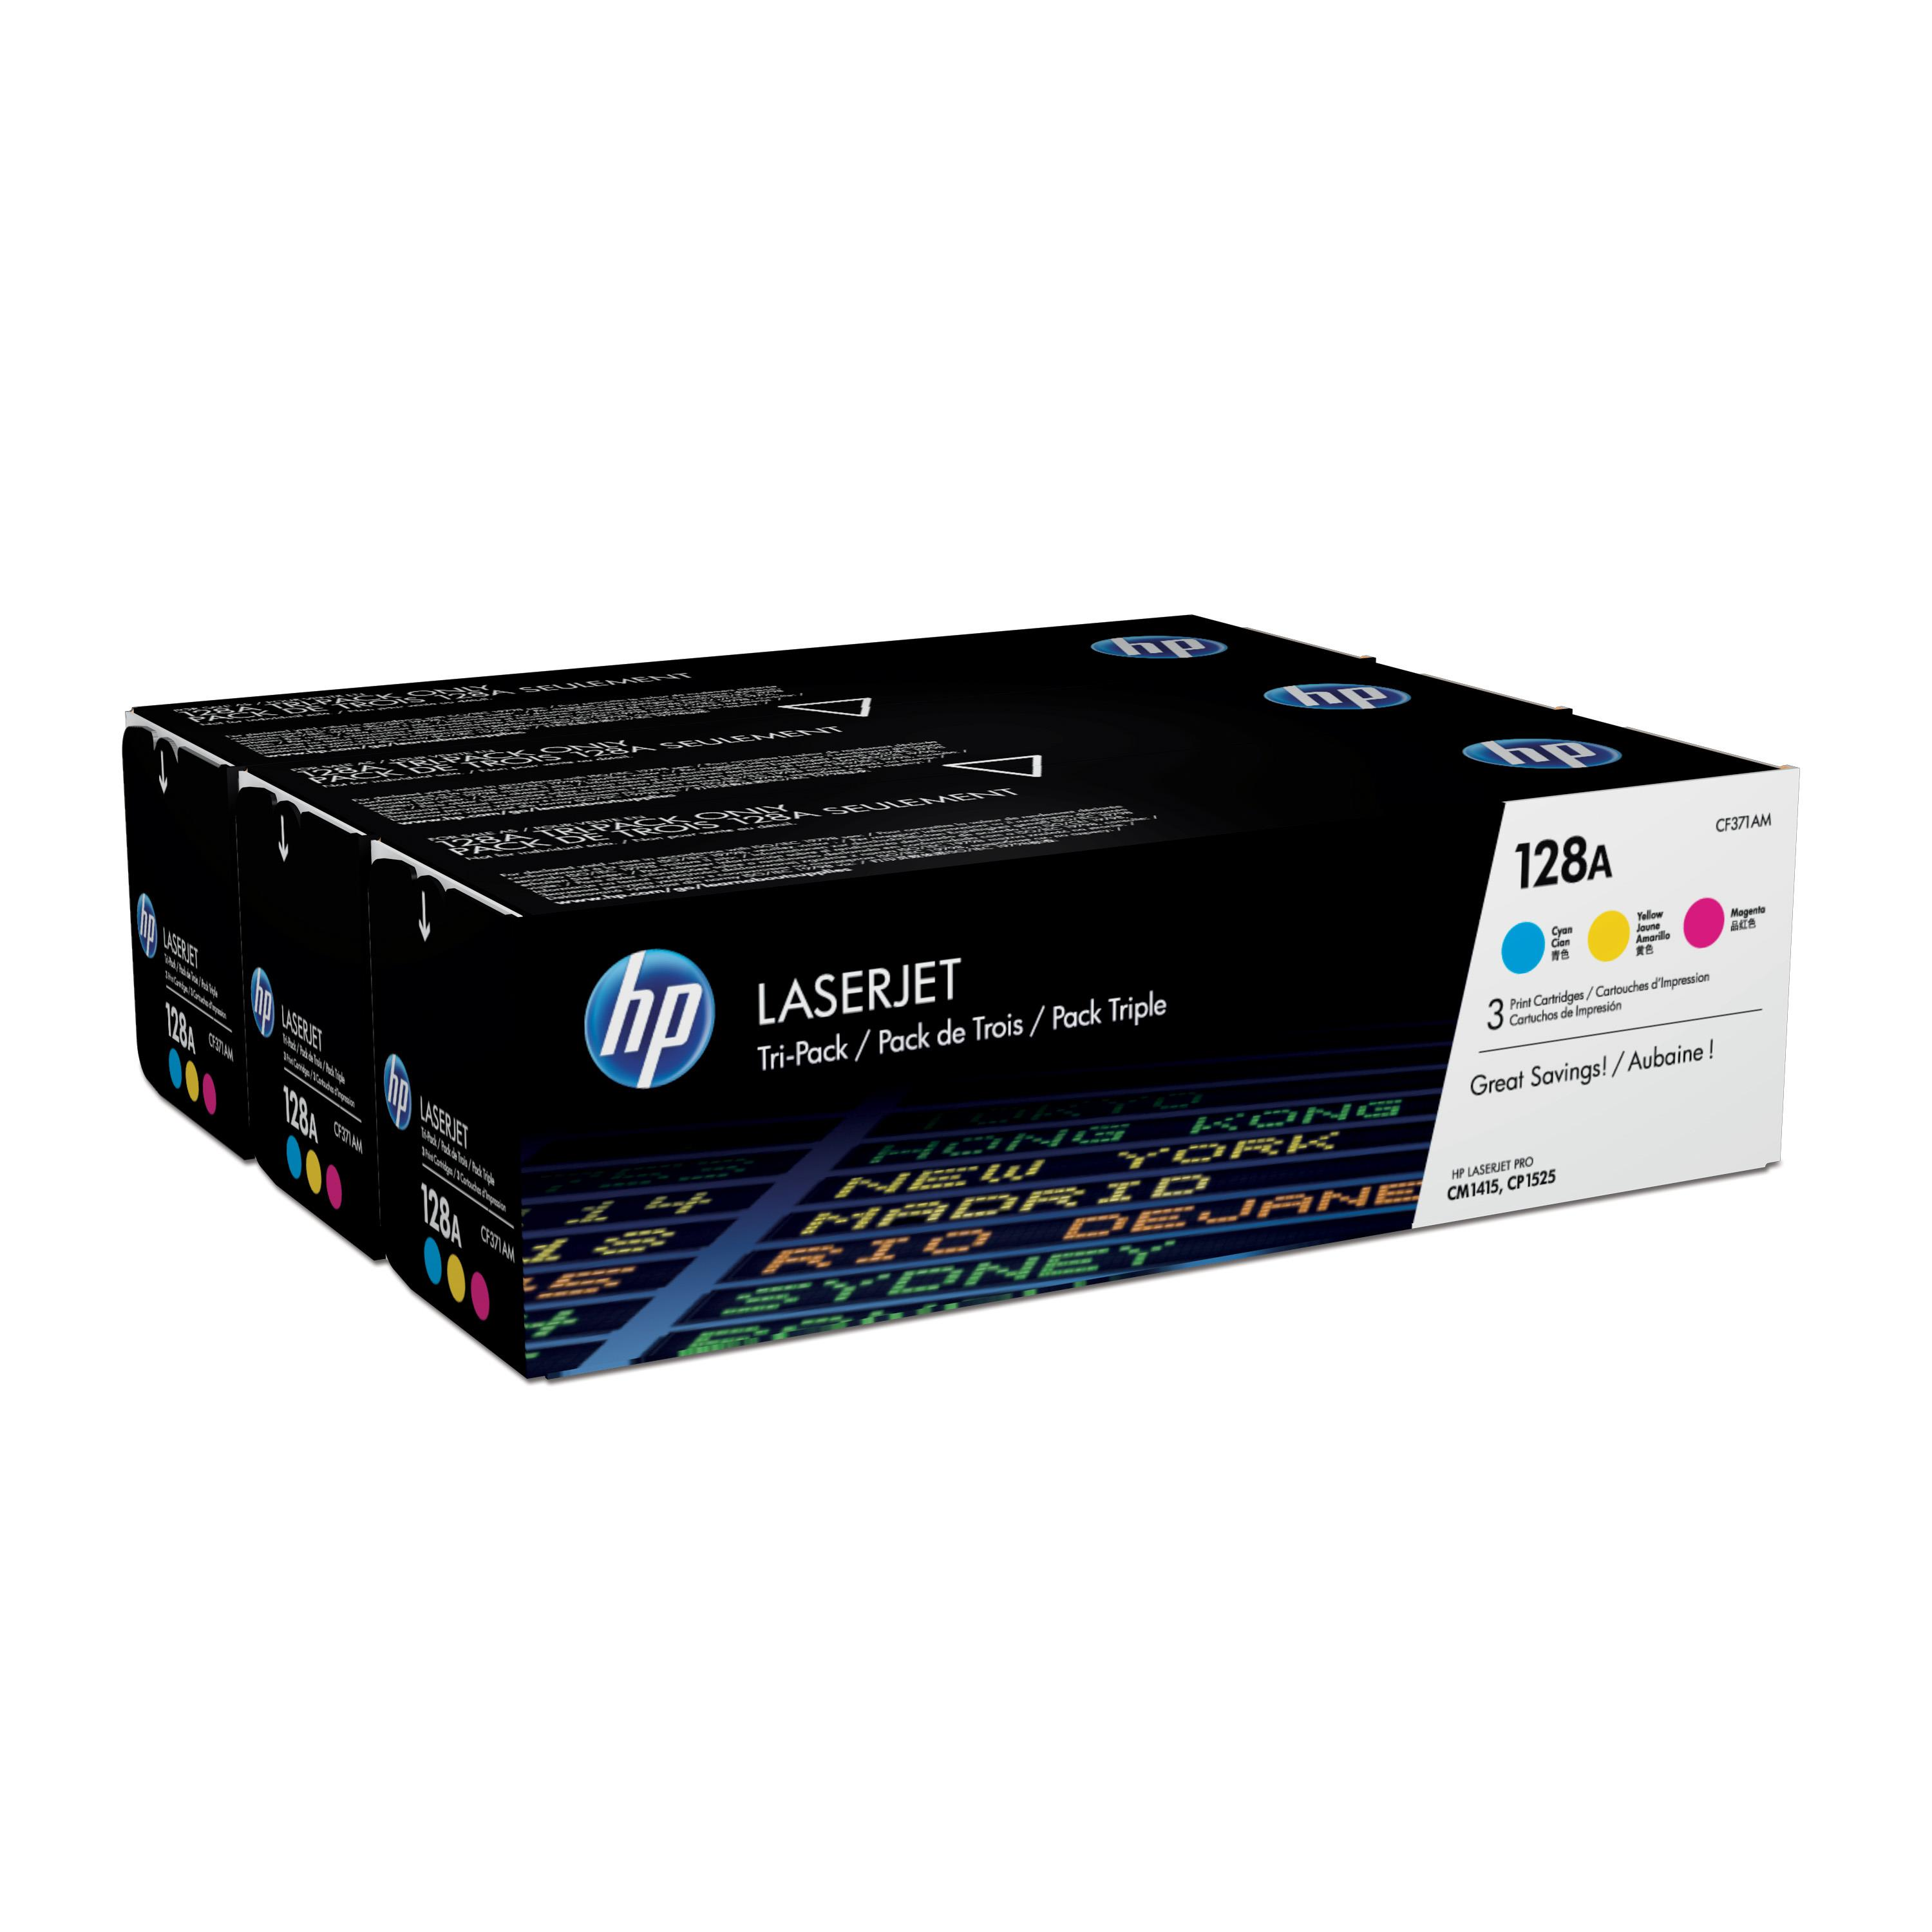 Hewlett Packard [HP] 128A Laser Toner Cartridge Page Life 1300pp Cyan/Magenta/Yellow Ref CF371AM [Pack 3]